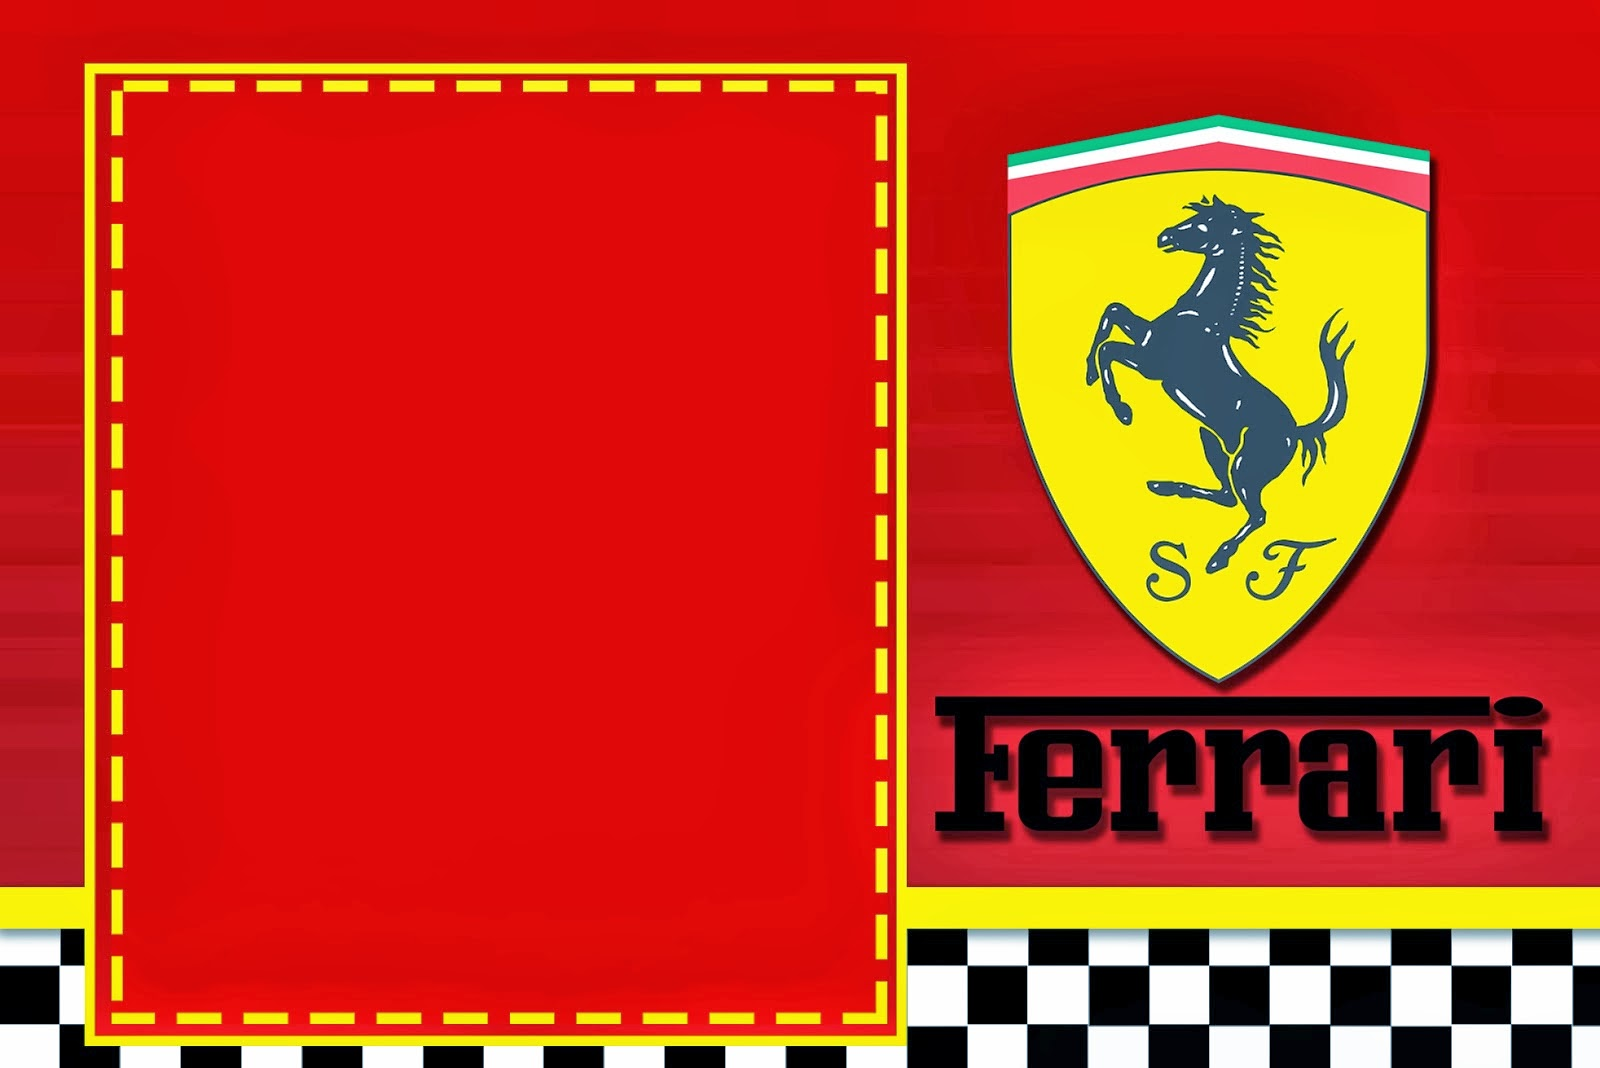 Ferrari Free Printable Cards or Invitations Oh My Fiesta in english